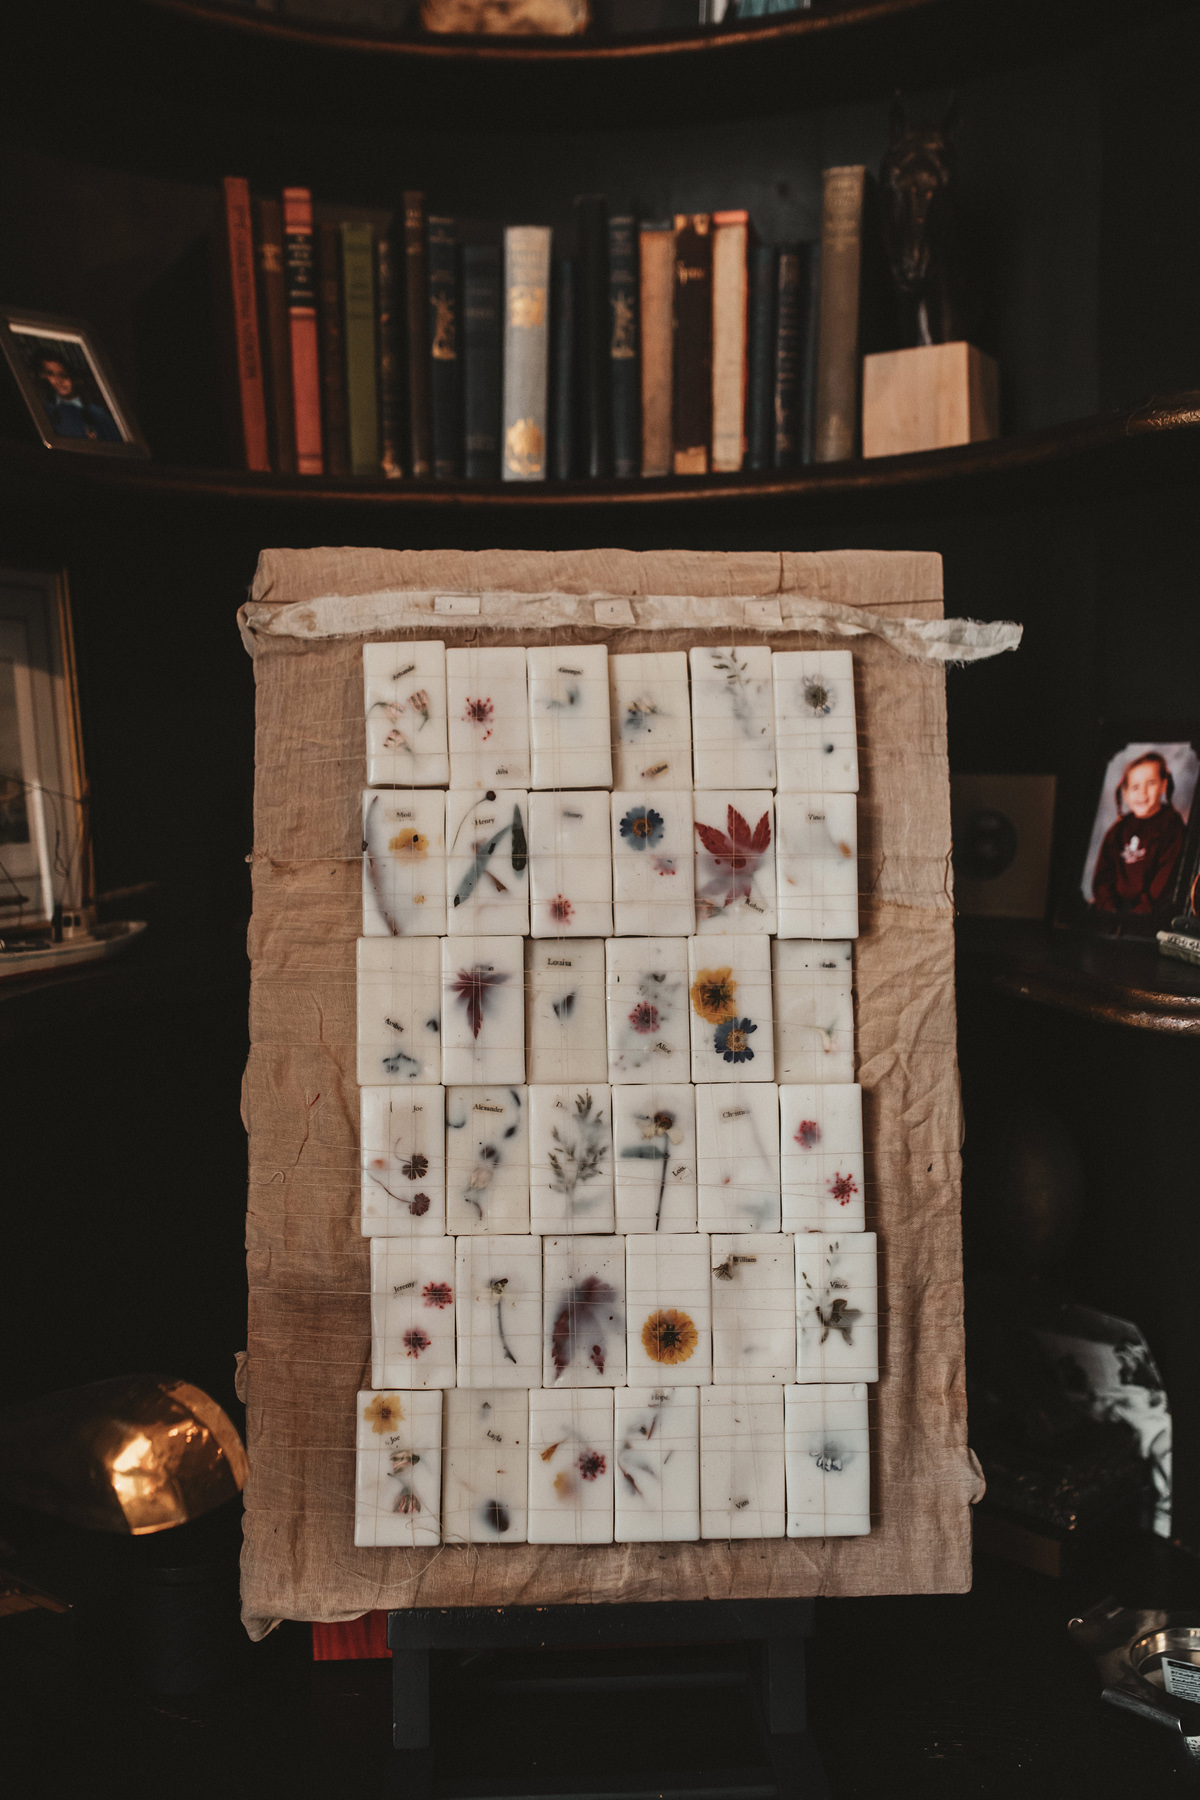 Bronte inspired bride  - The Bronte Bride: A Romantic & Wistful Editorial at at 17th Century Manor House